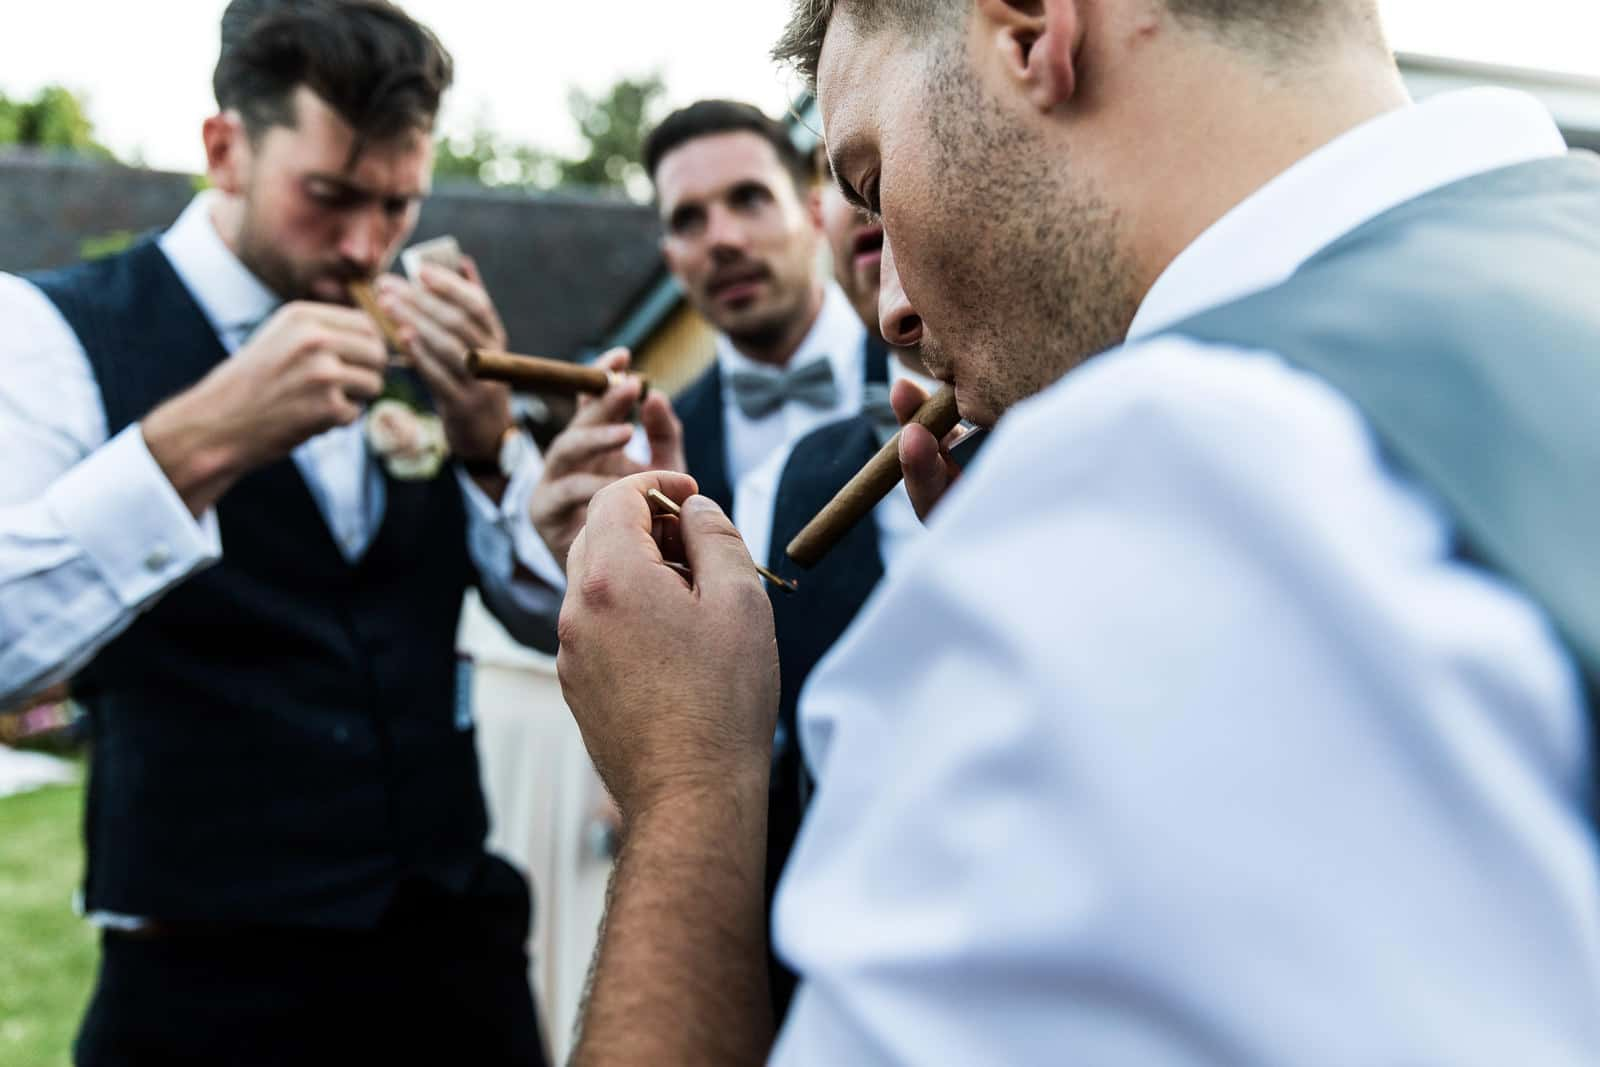 Groomsmen lighting cigars at a wedding at swallows nest barn